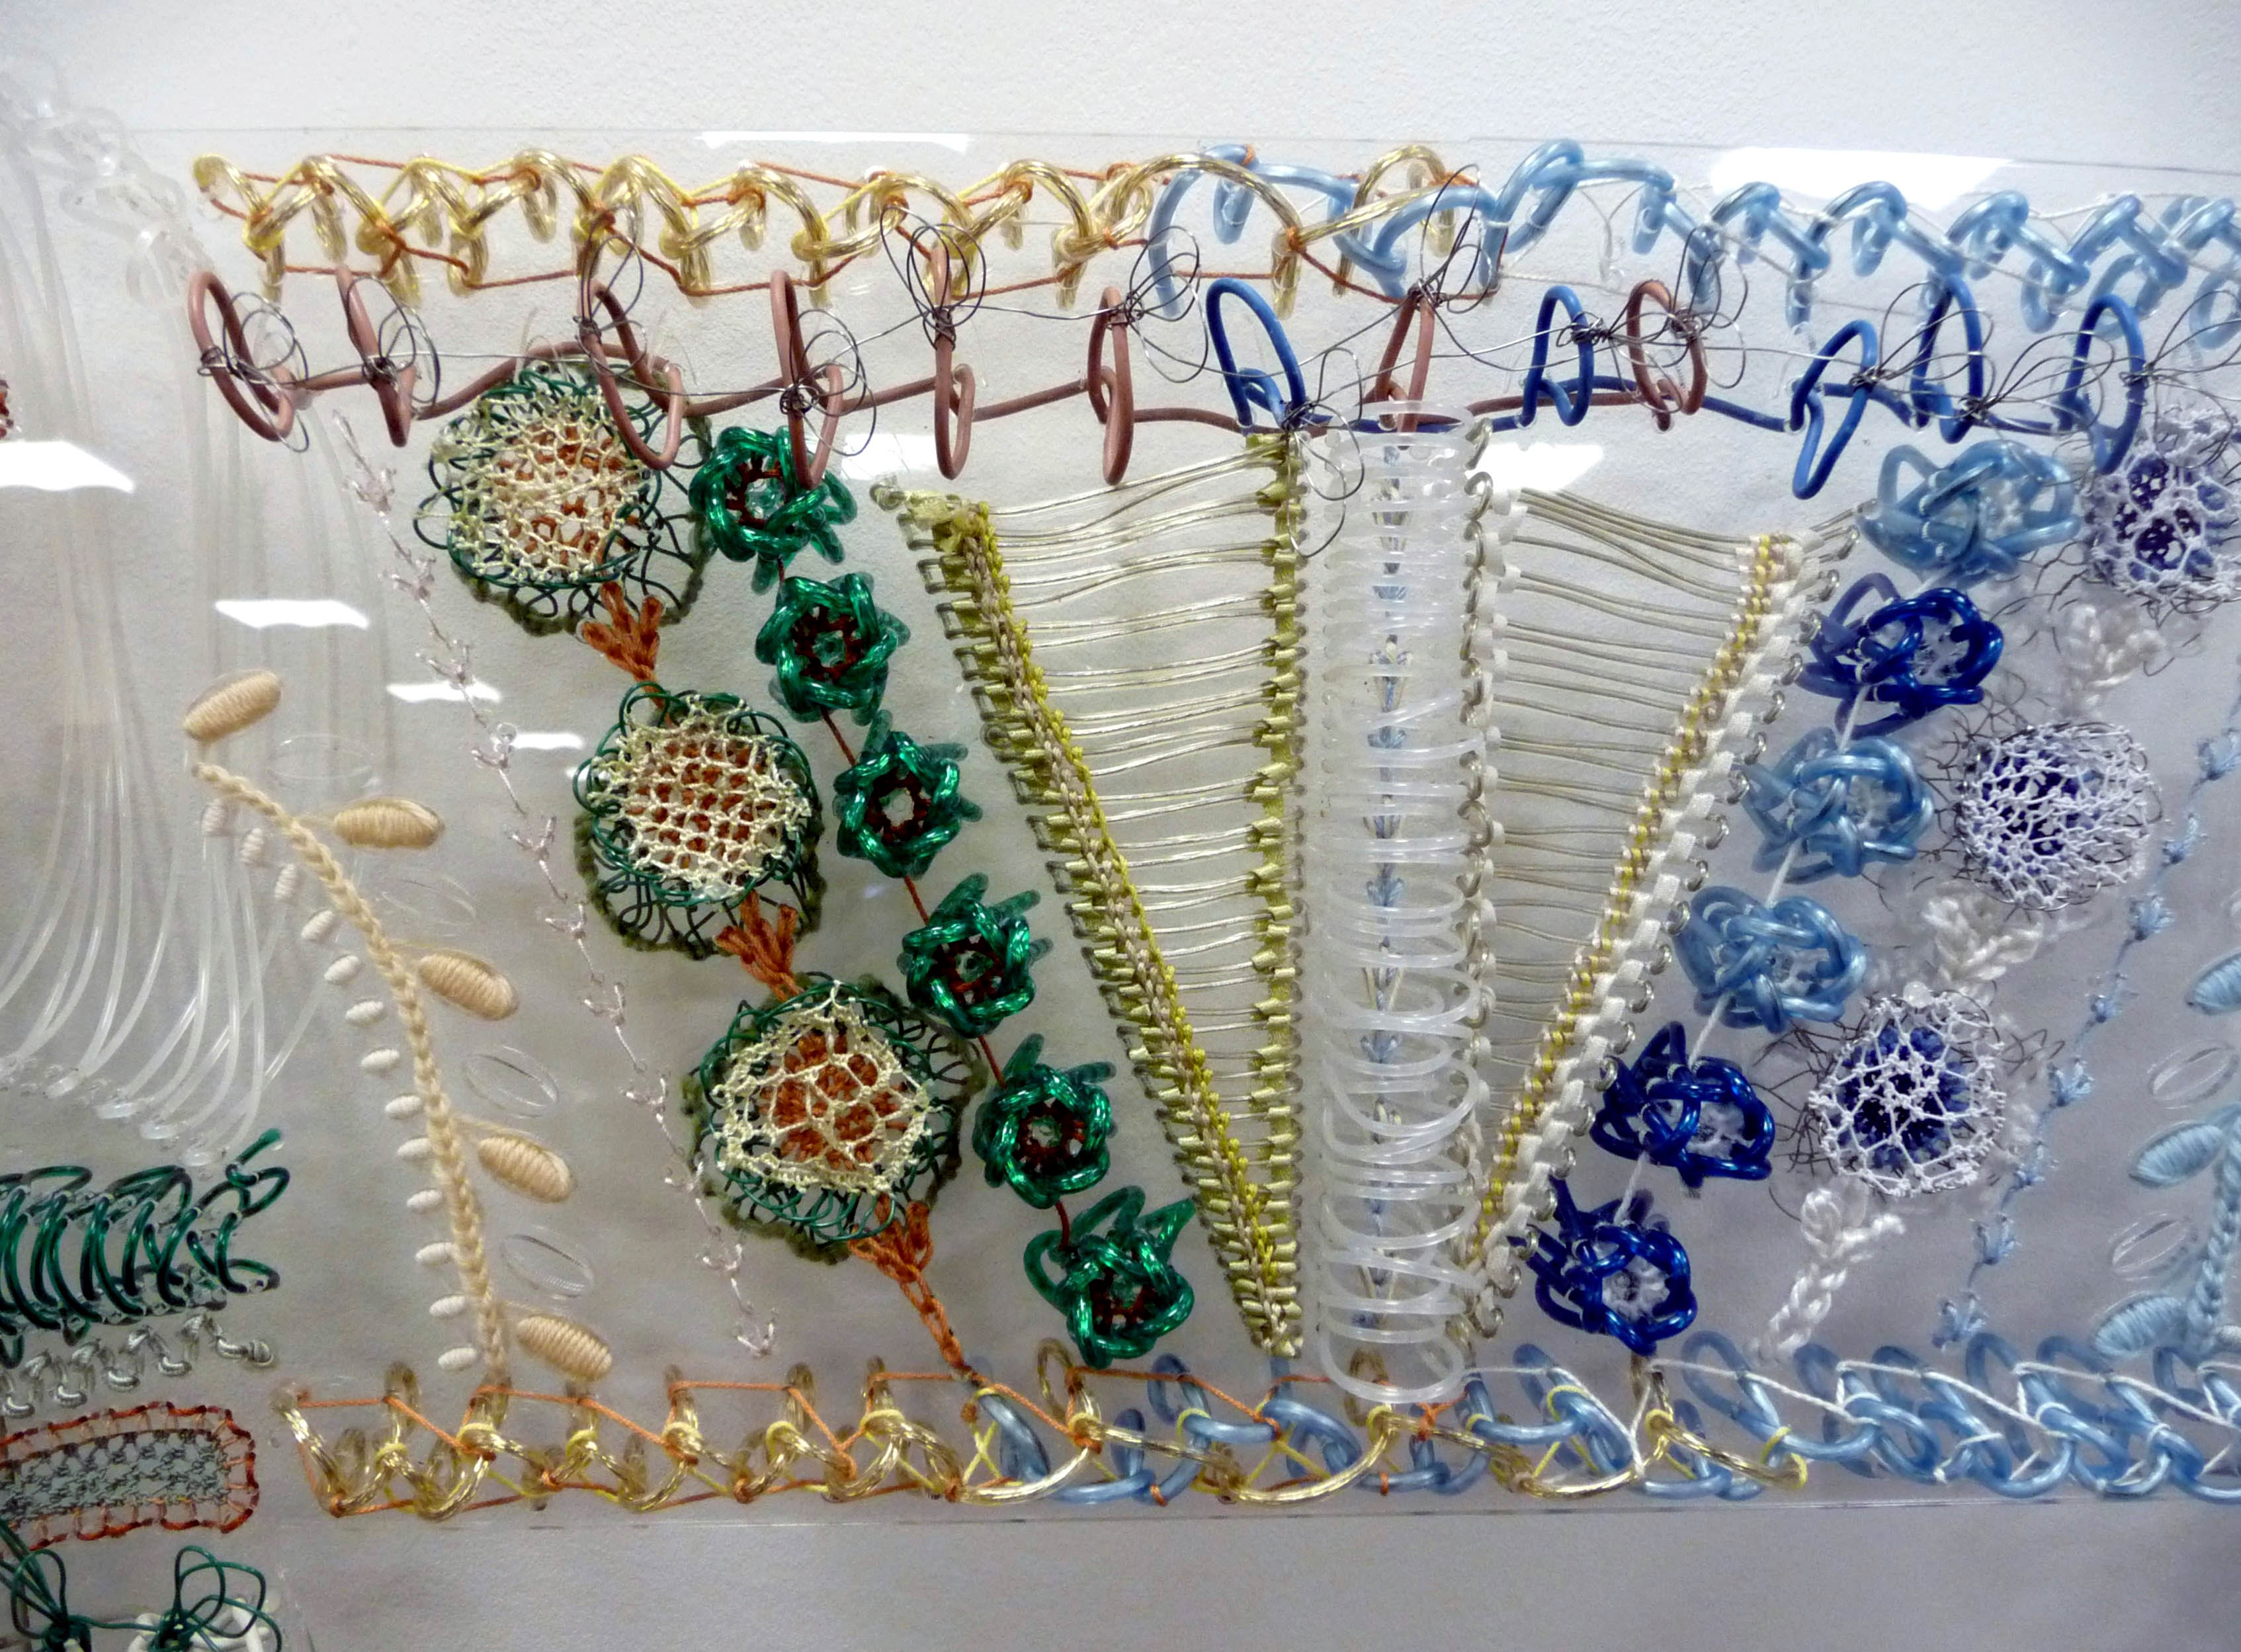 detail of SAMPLER 1 by Bella May Leonard, artist in residence at Gawthorpe Hall 2013. Stitch on pierced perspex.